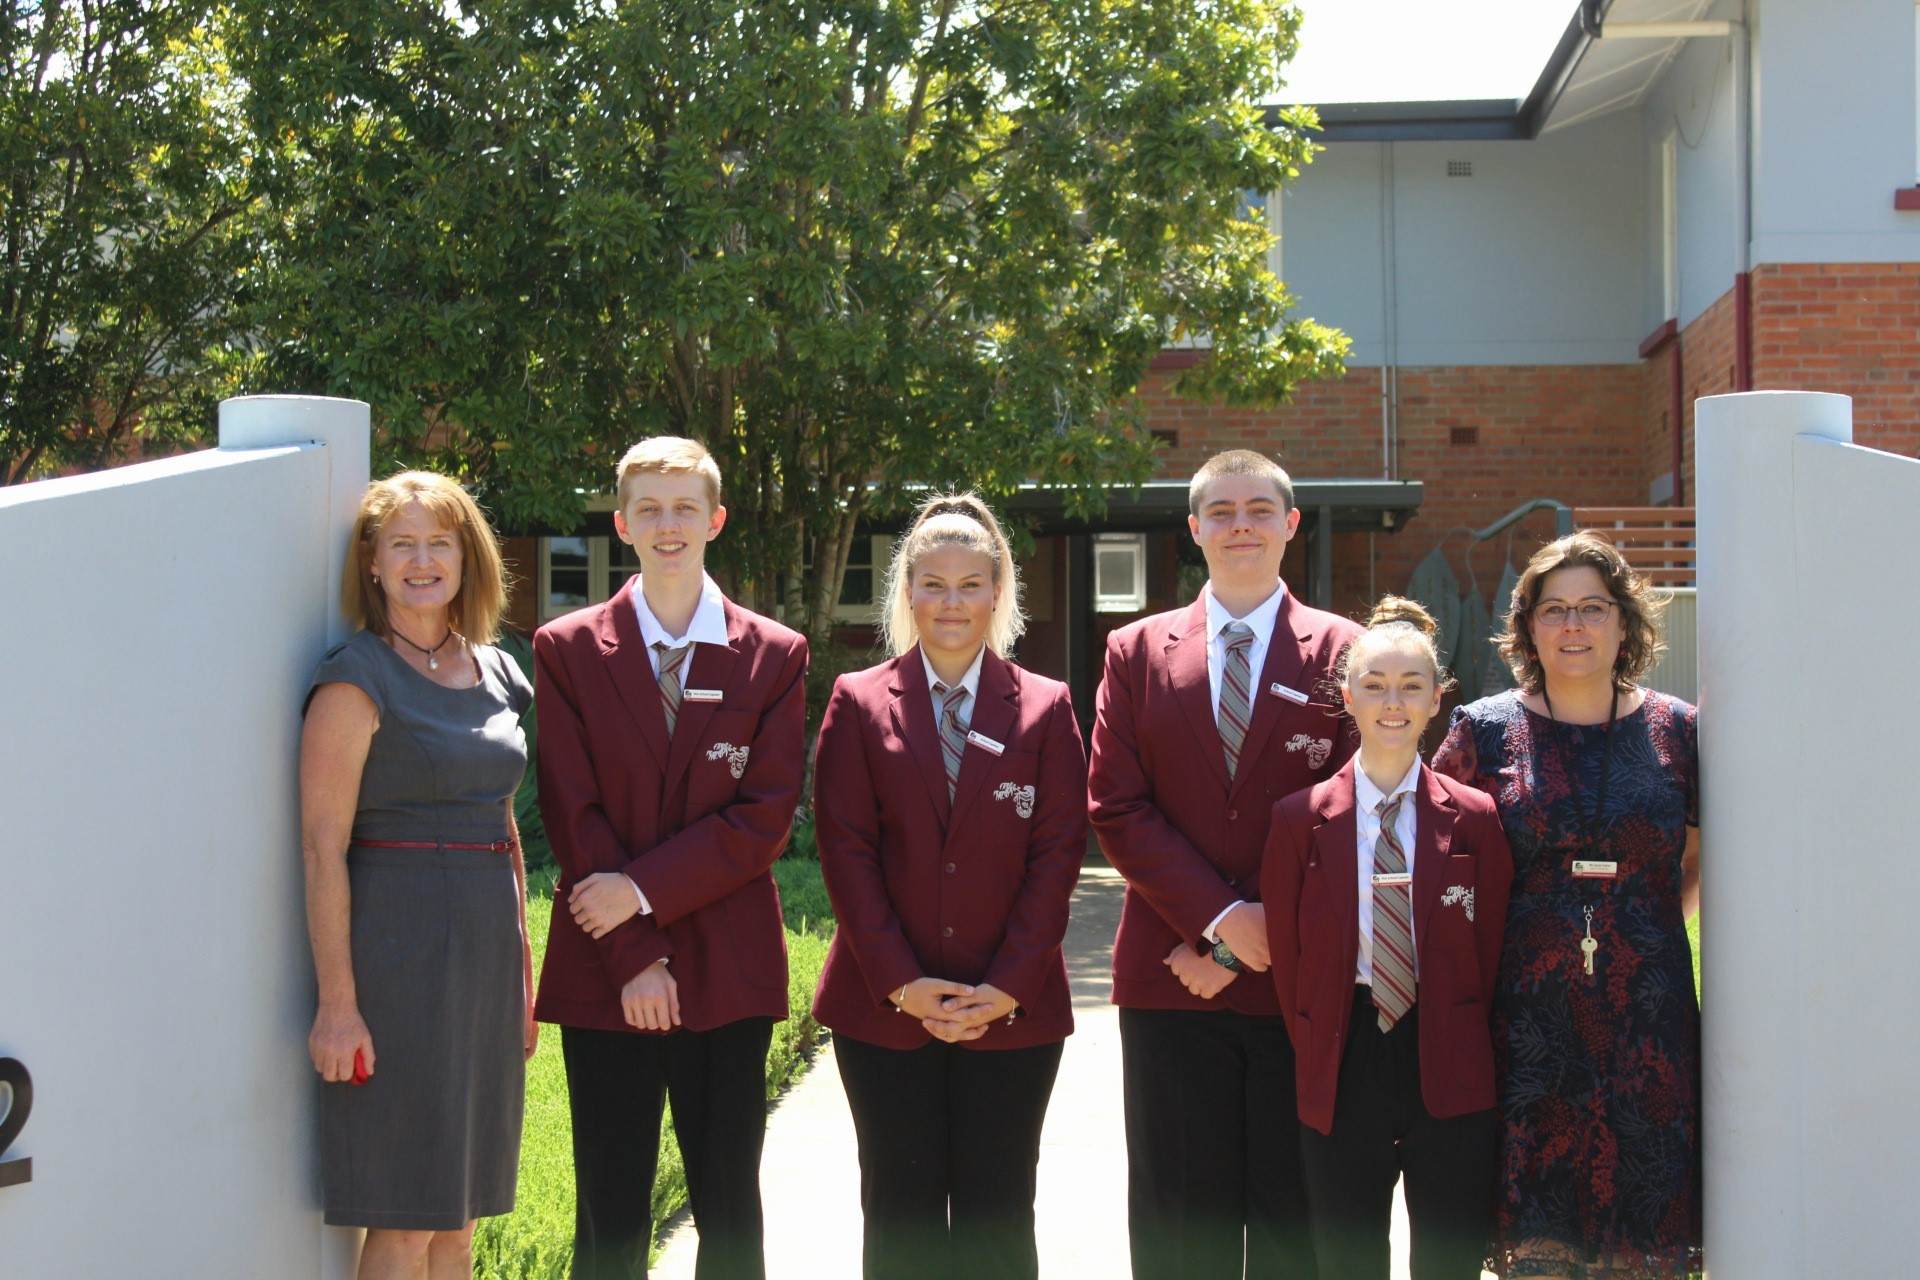 The School Leaders 2020 for Ravenshoe State School-Secondary are Secondary Vice Captain: Zac Fordson, Secondary School Captain: Skye Adamson, Secondary School Captain: Darcy Kemp, and Secondary Vice Captain: Paige Groves, with Principal: Ms Helen Carne and Deputy Principal: Ms Jess Cairns.  View The School